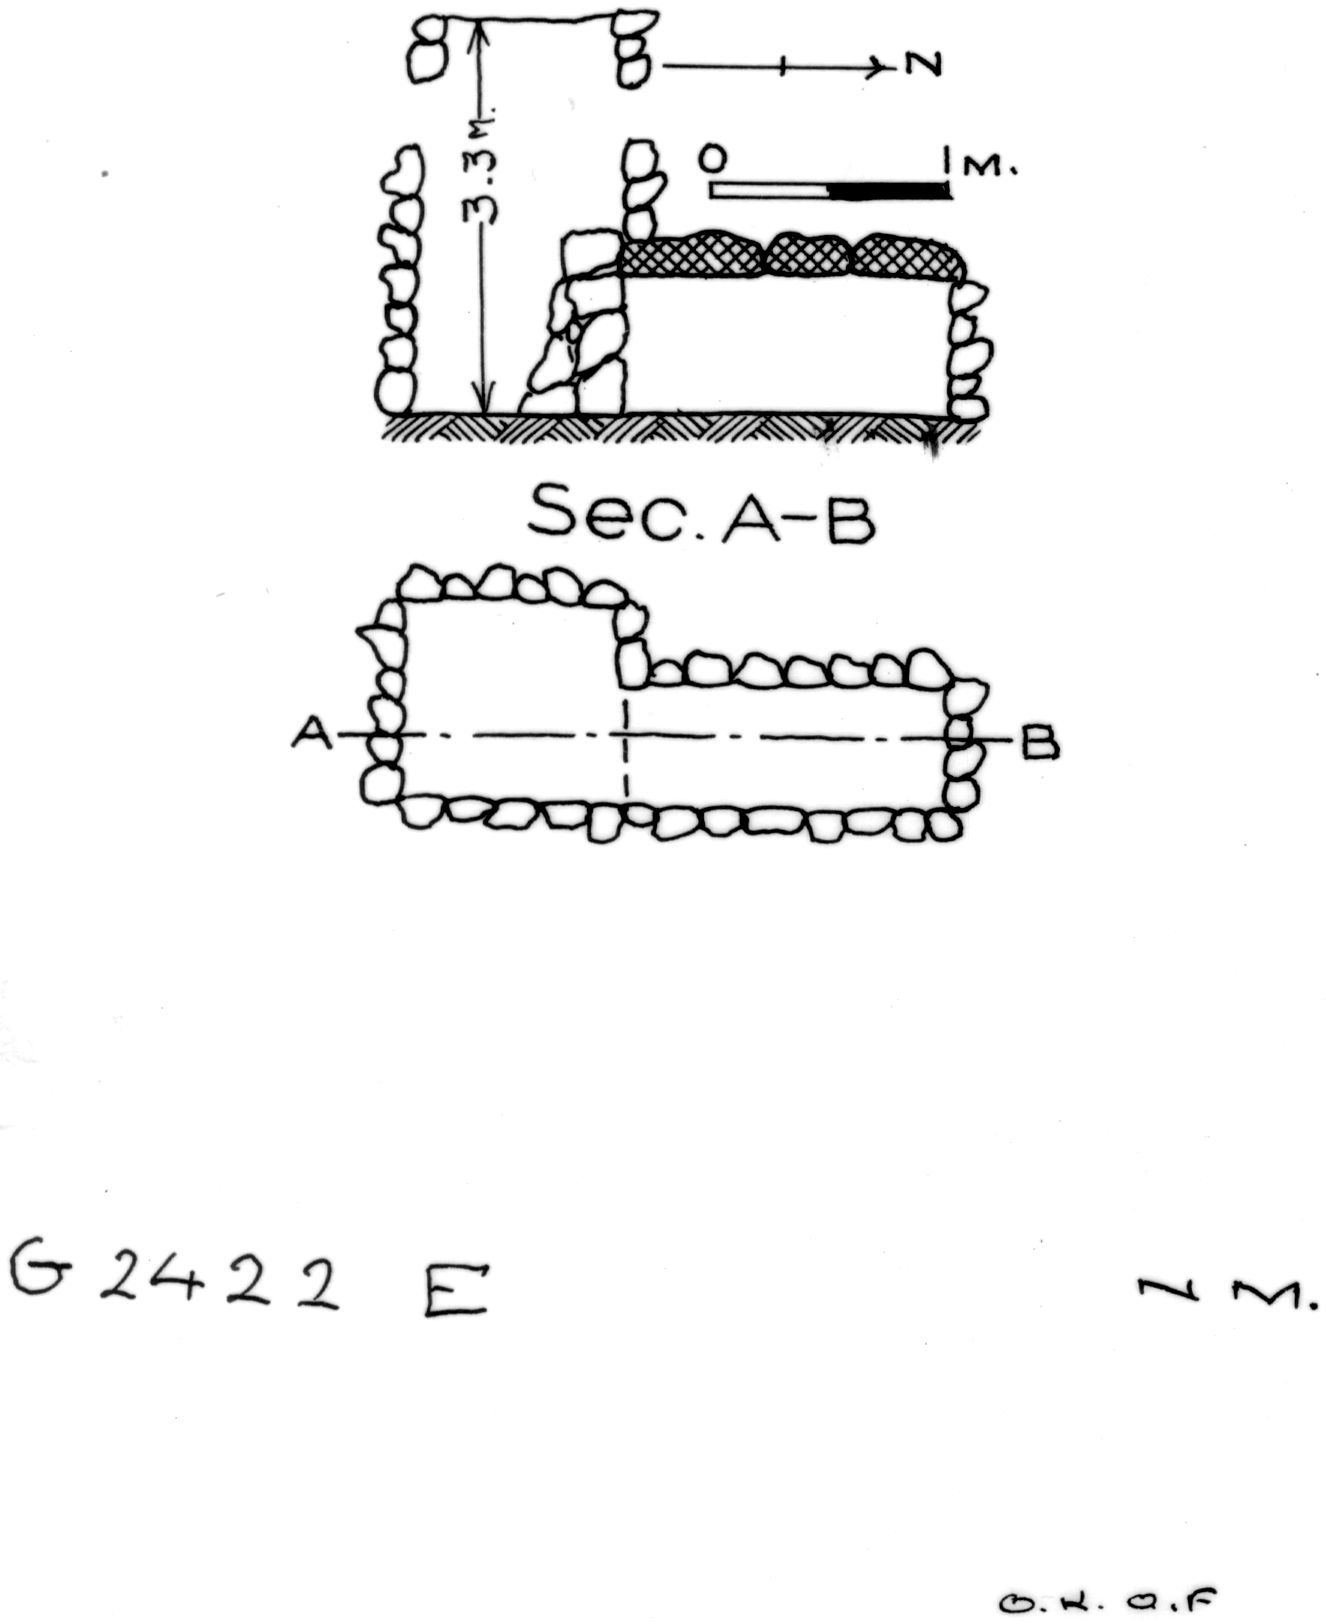 Maps and plans: G 2422, Shaft E